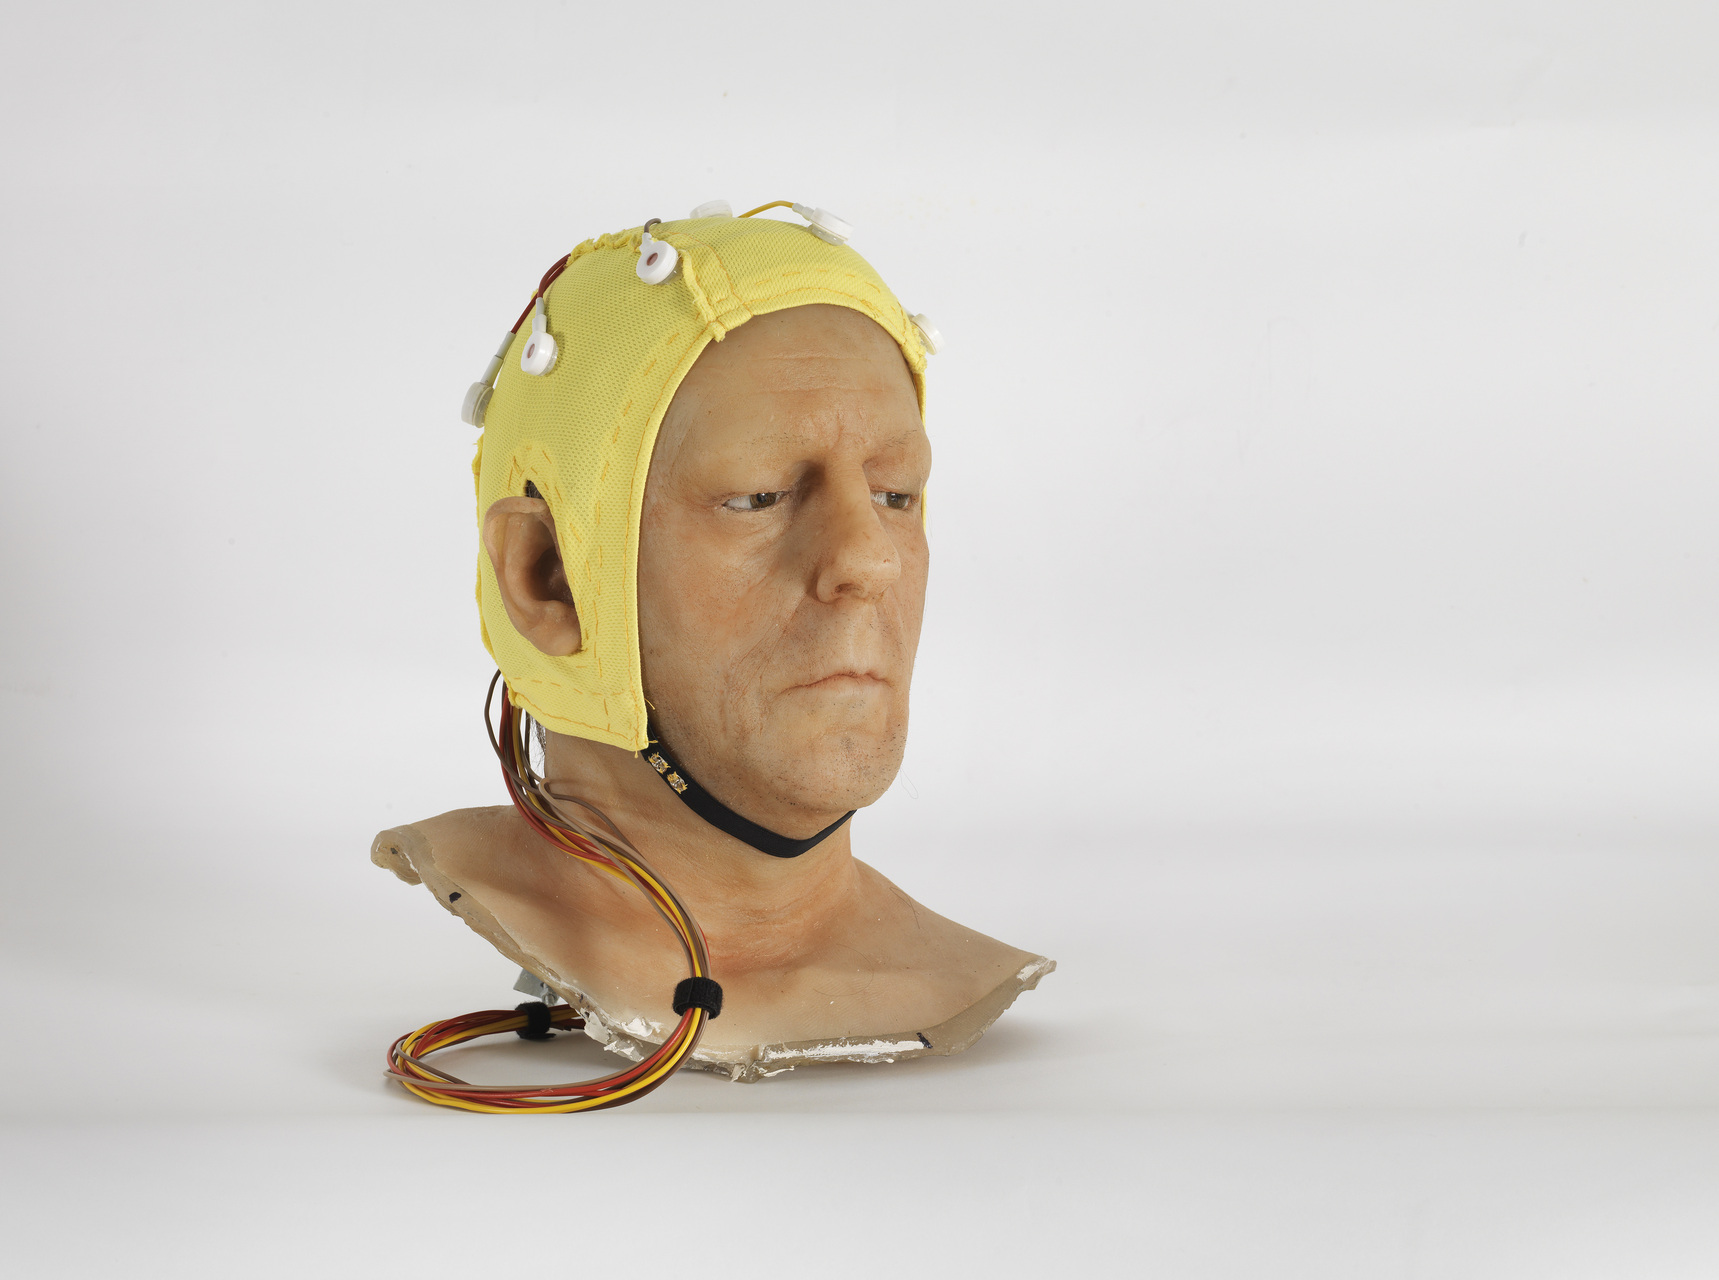 Jan_Fabre,_Do_We_Feel_With_Our_Brain_and_Think_With_Our_Heart,_2012,_collection_Angelos_bvba,_photo_Lieven_Herreman_courtesy_Angelos